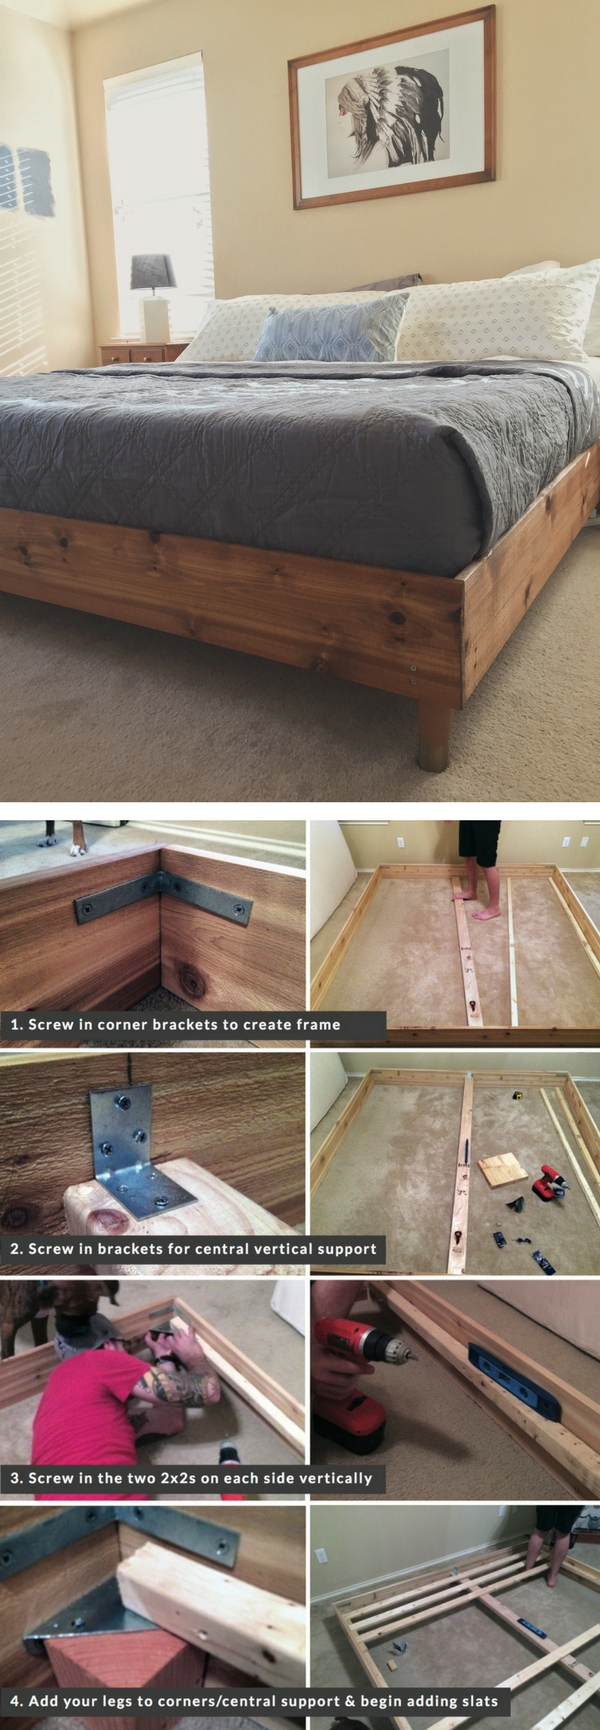 45 Easy DIY Bed Frame Projects You Can Build on a Budget - Check out the tutorial on how to build a DIY king size bed